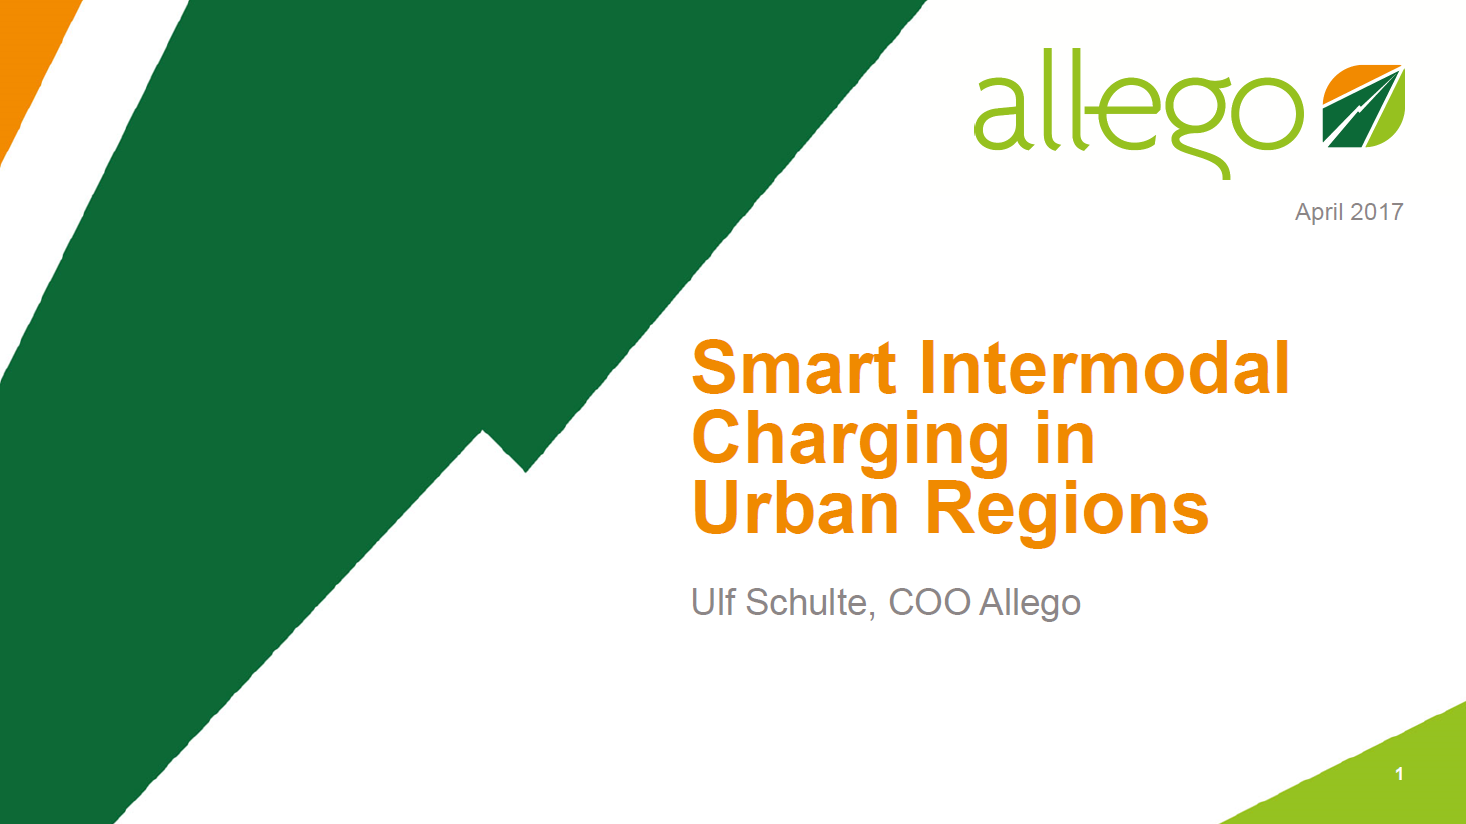 Presentation on Smart Intermodal Charging in Urban Regions